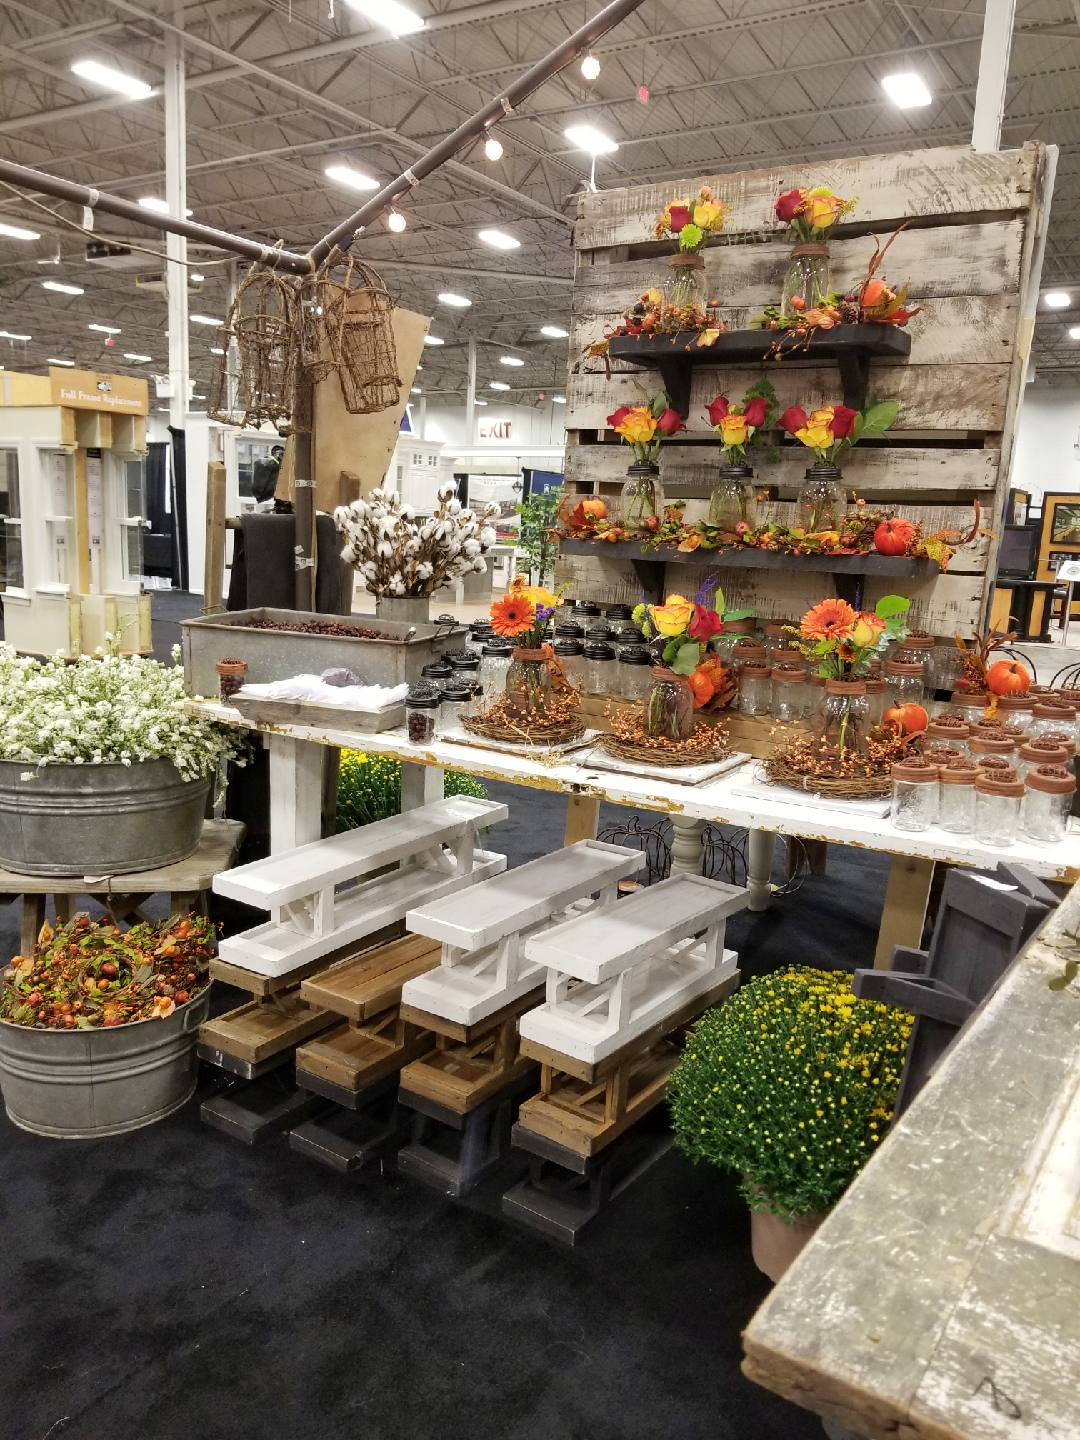 We Here At Beekeeperu0027s Cottage In Leesburg, VA Were Honored To Be Included  As An Exhibitor At The Capital Home Show Held At The Dulles Expo Center In  ...